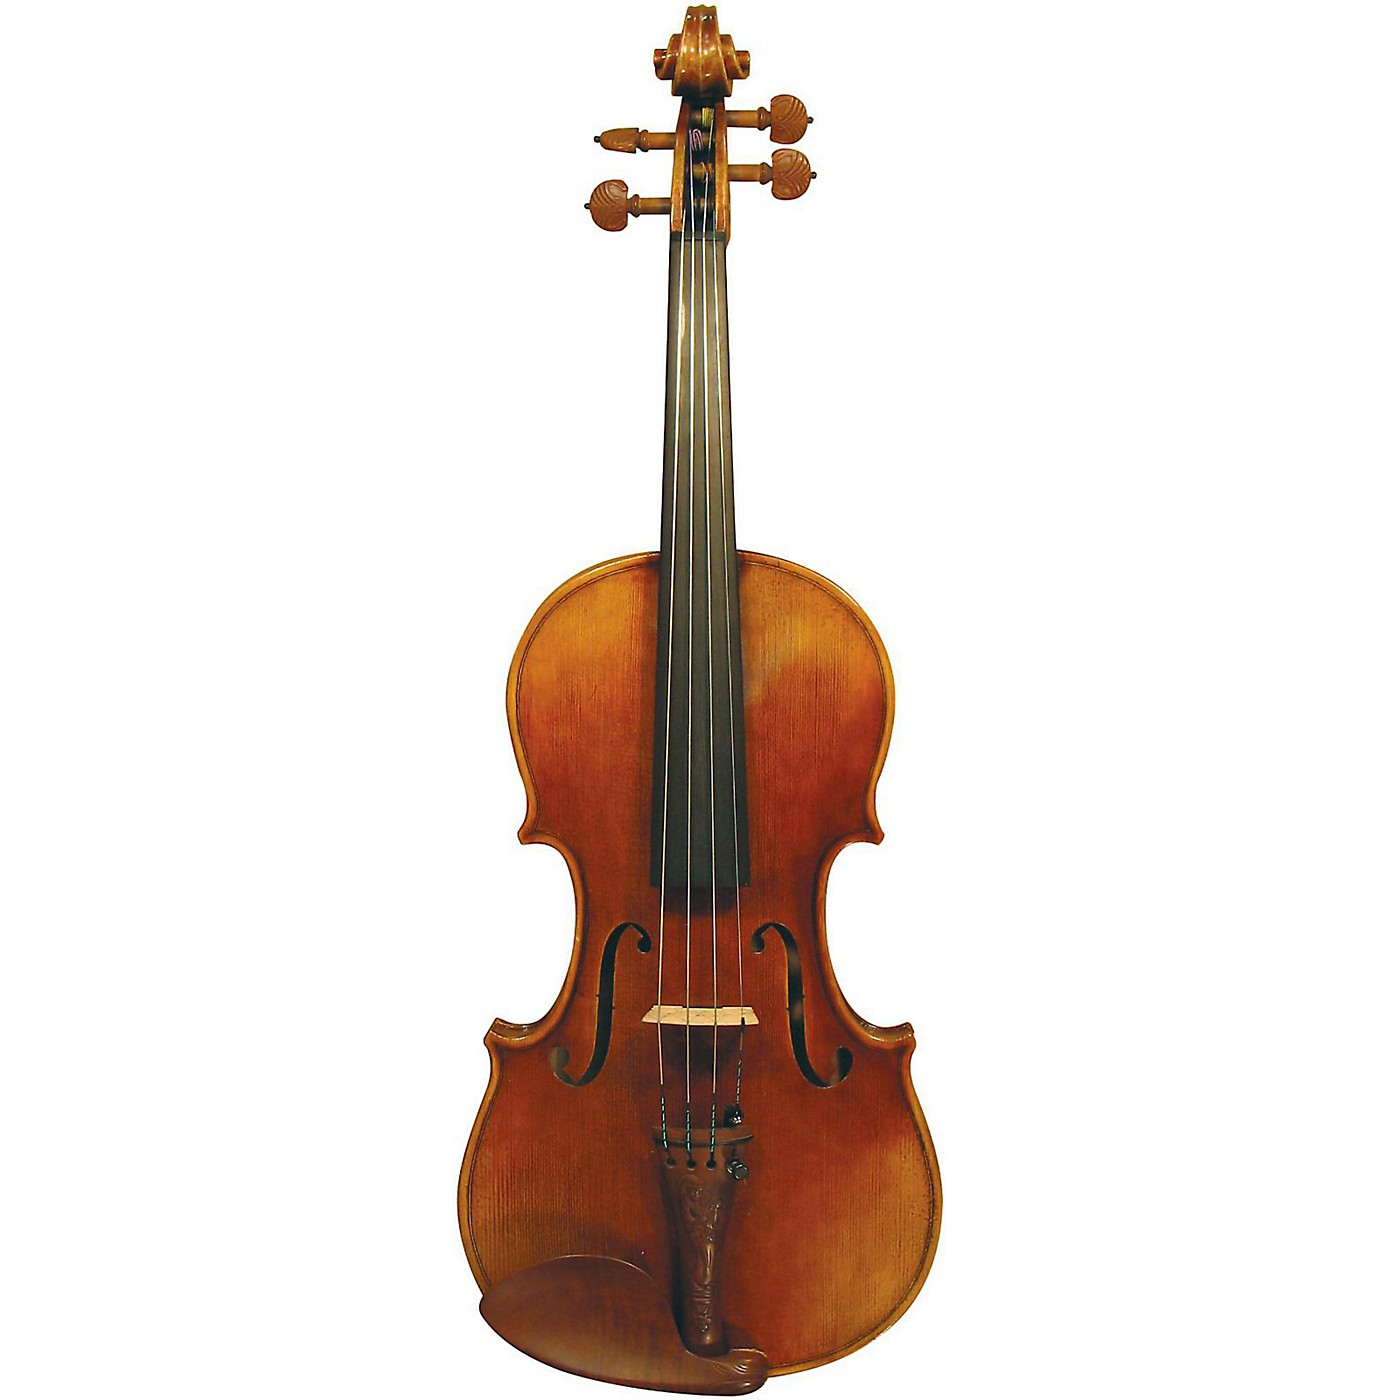 Maple Leaf Strings Chaconne Craftsman Collection Violin thumbnail